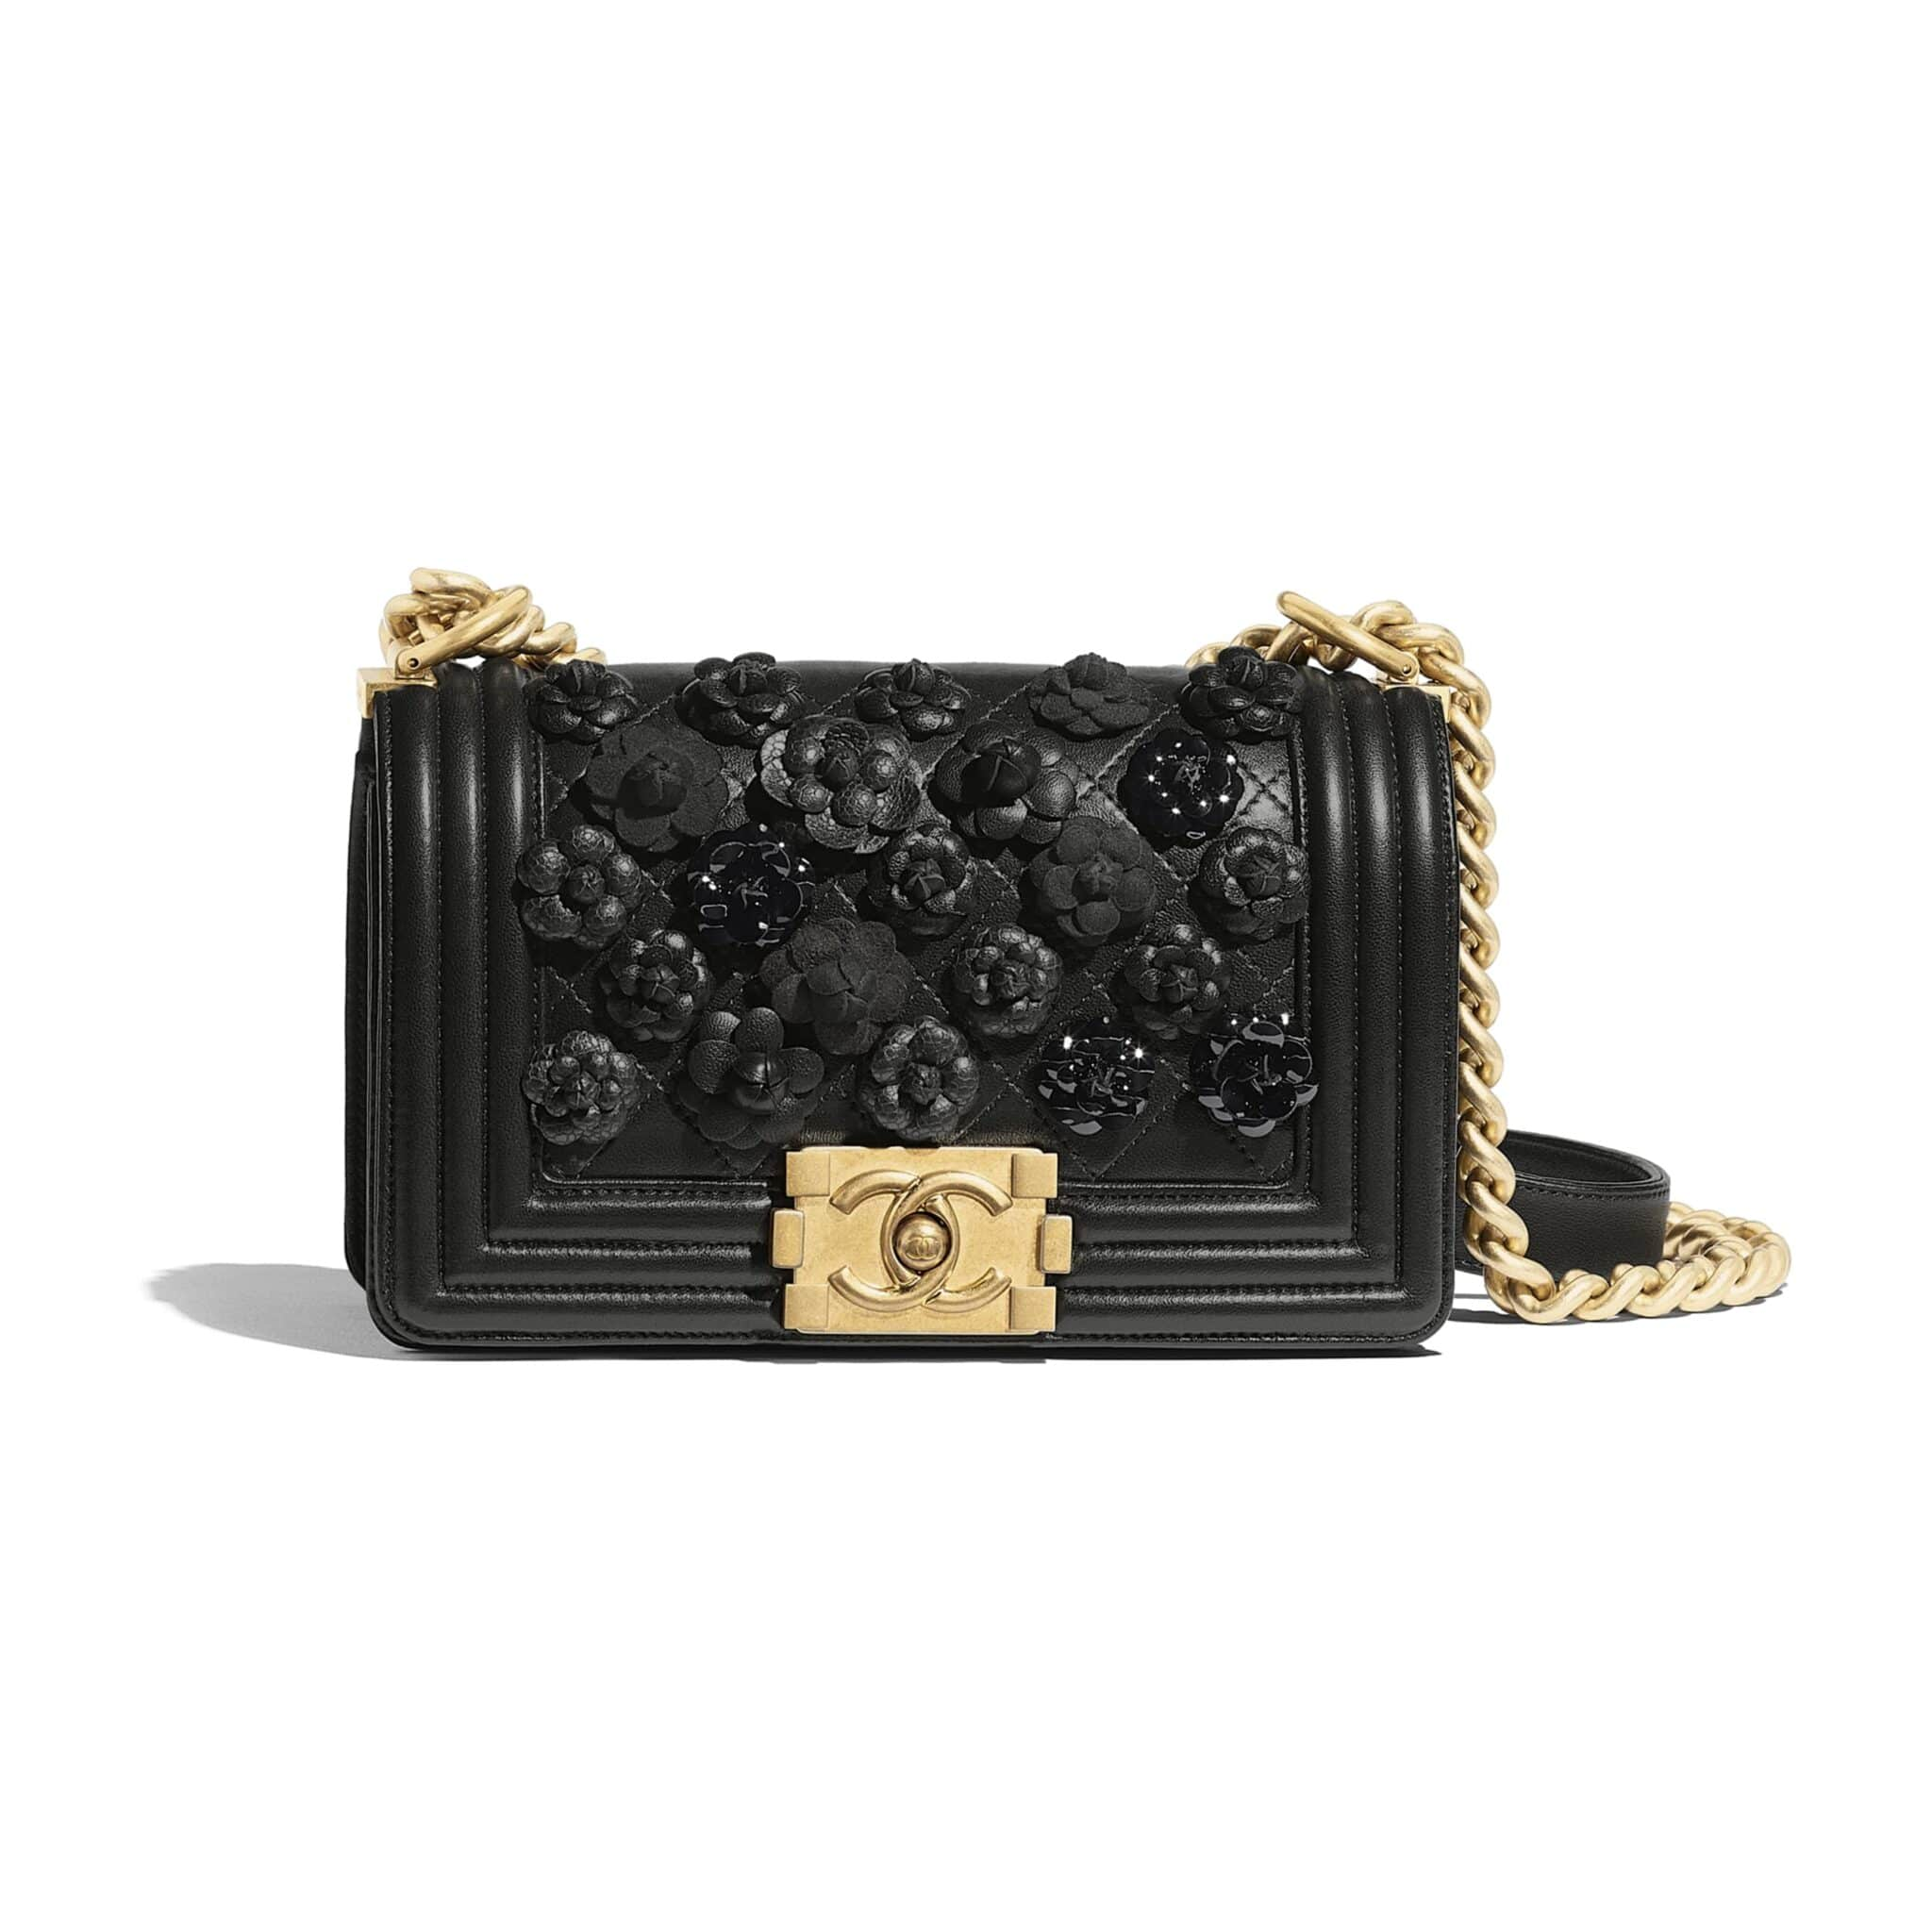 585508ce4d0f4b Chanel Black Camellia Embroidered Lambskin Boy Chanel Small Flap Bag